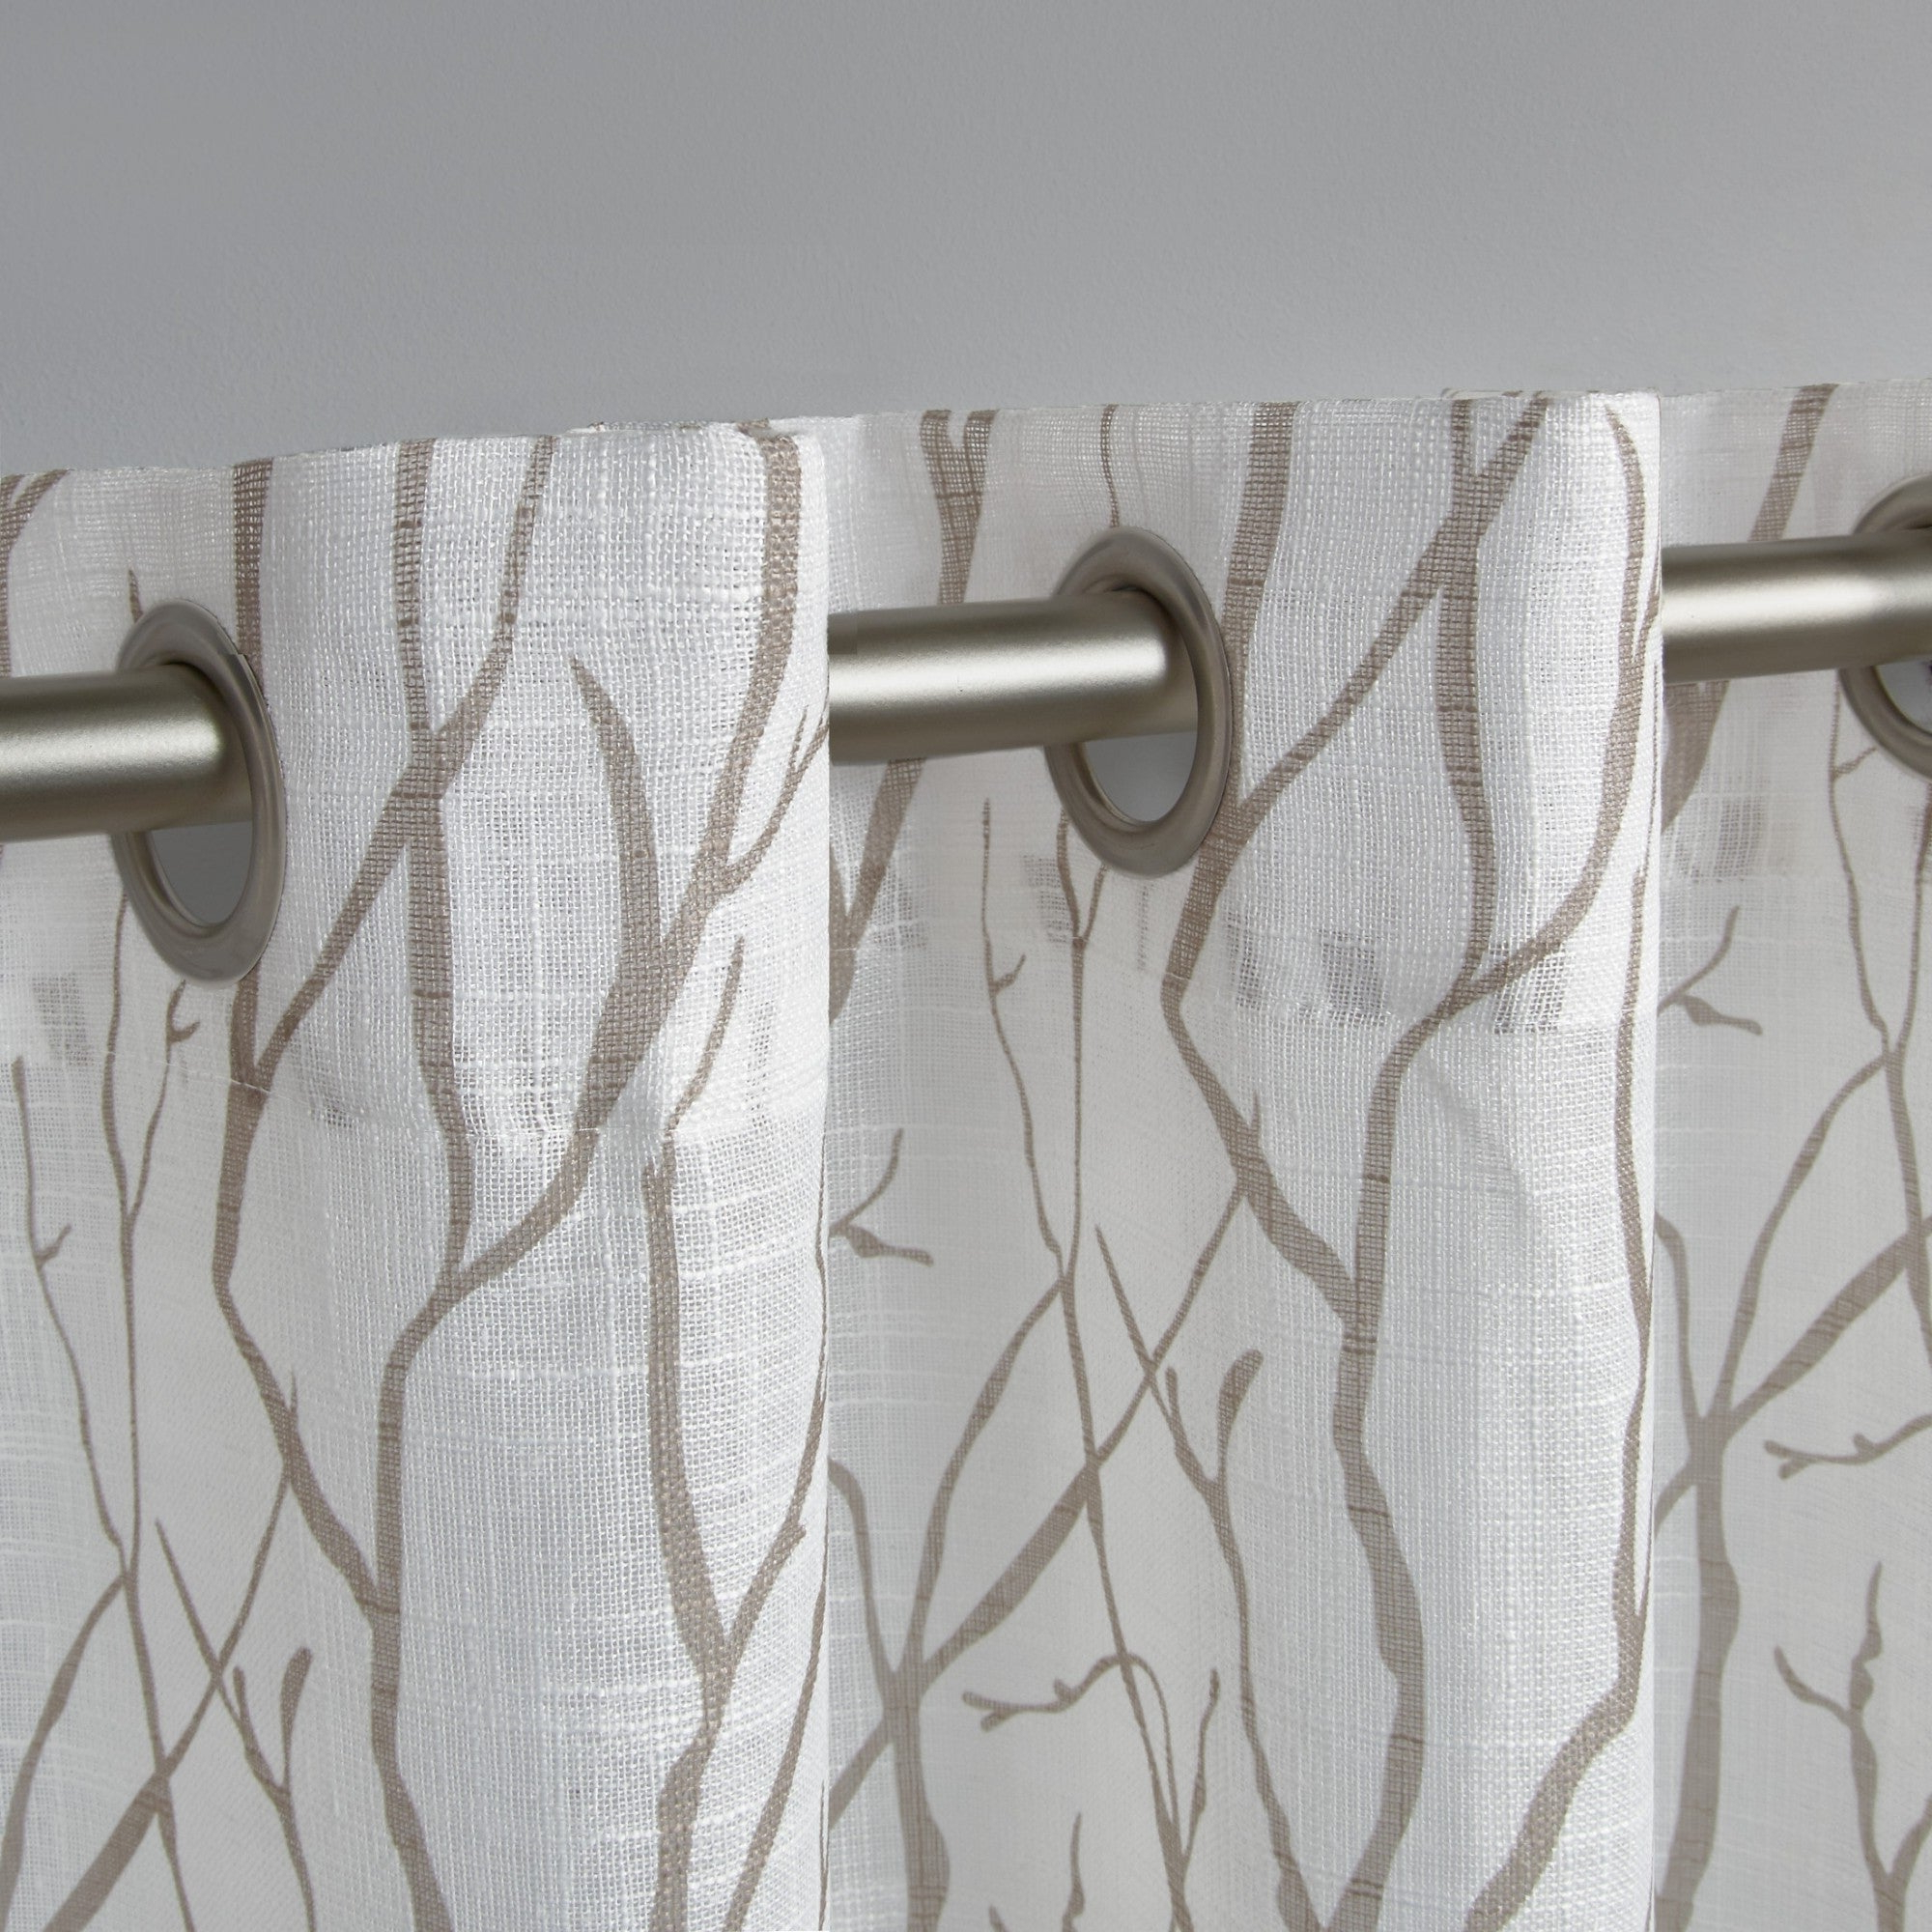 Fashionable Ati Home Oakdale Textured Linen Sheer Grommet Top Curtain Panel Pair Pertaining To Oakdale Textured Linen Sheer Grommet Top Curtain Panel Pairs (Gallery 8 of 20)